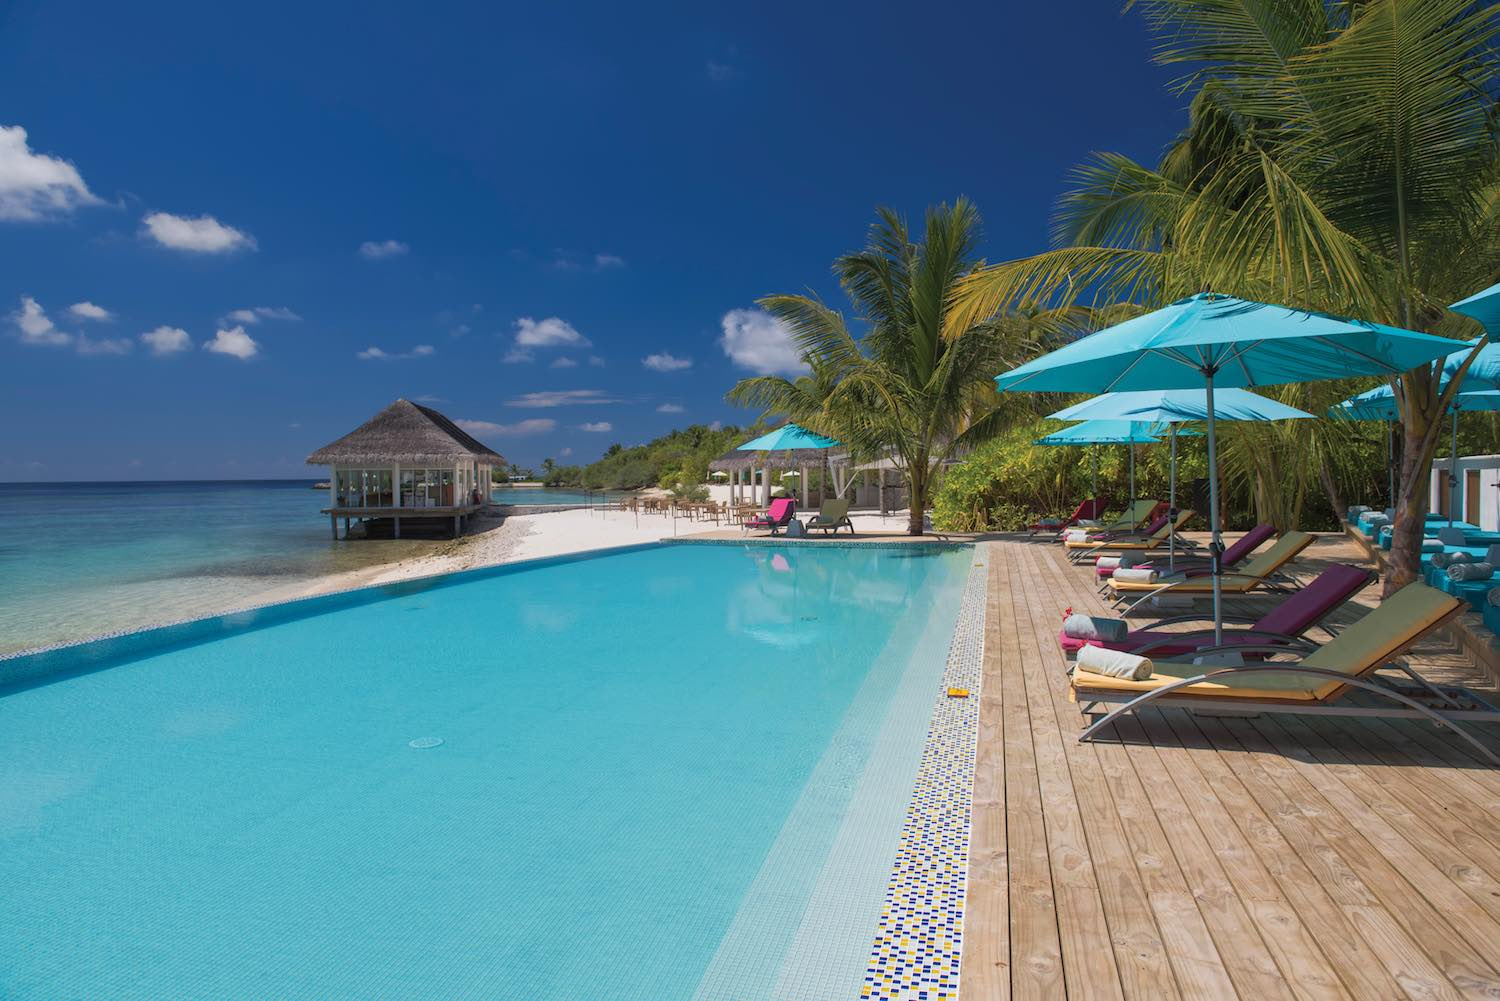 maldives-oblu-by-atmosphere-at-helengeli-adult-only-pool-4-holiday-honeymoon-vacation-invite-to-paradise.jpg